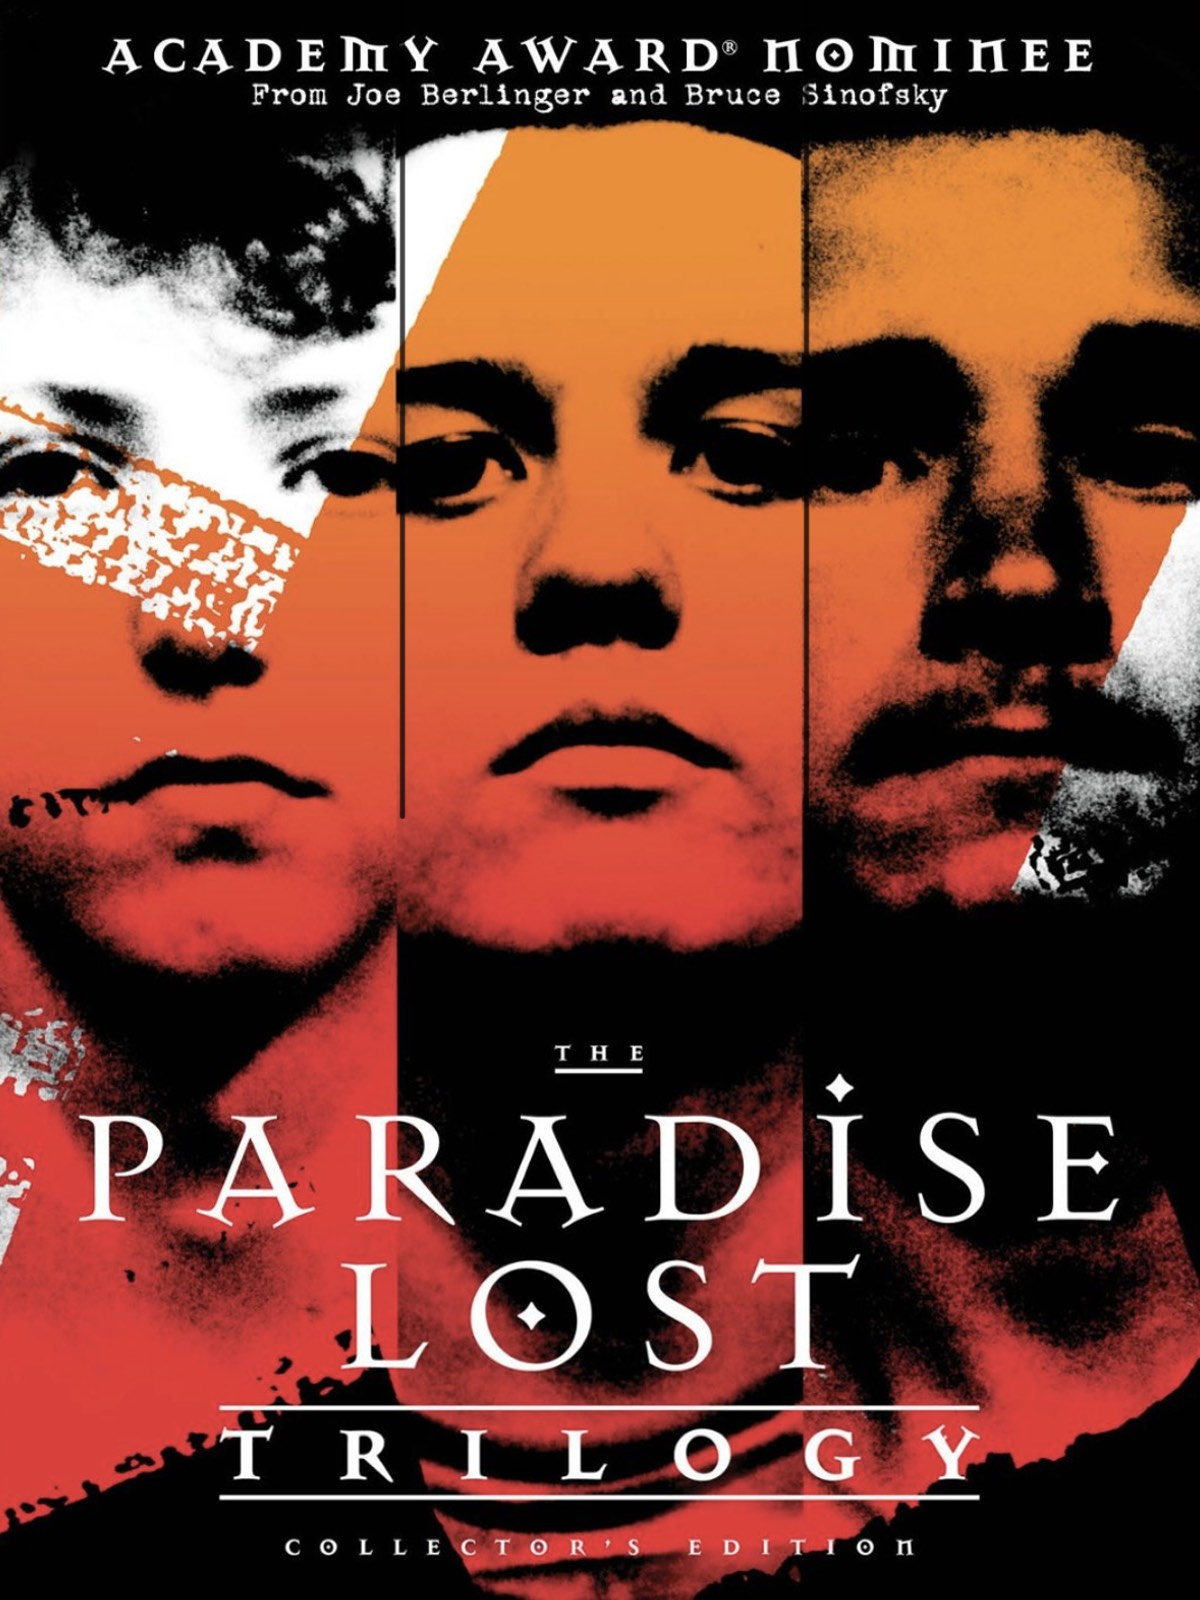 The Paradise Lost films were influential in publicising the case